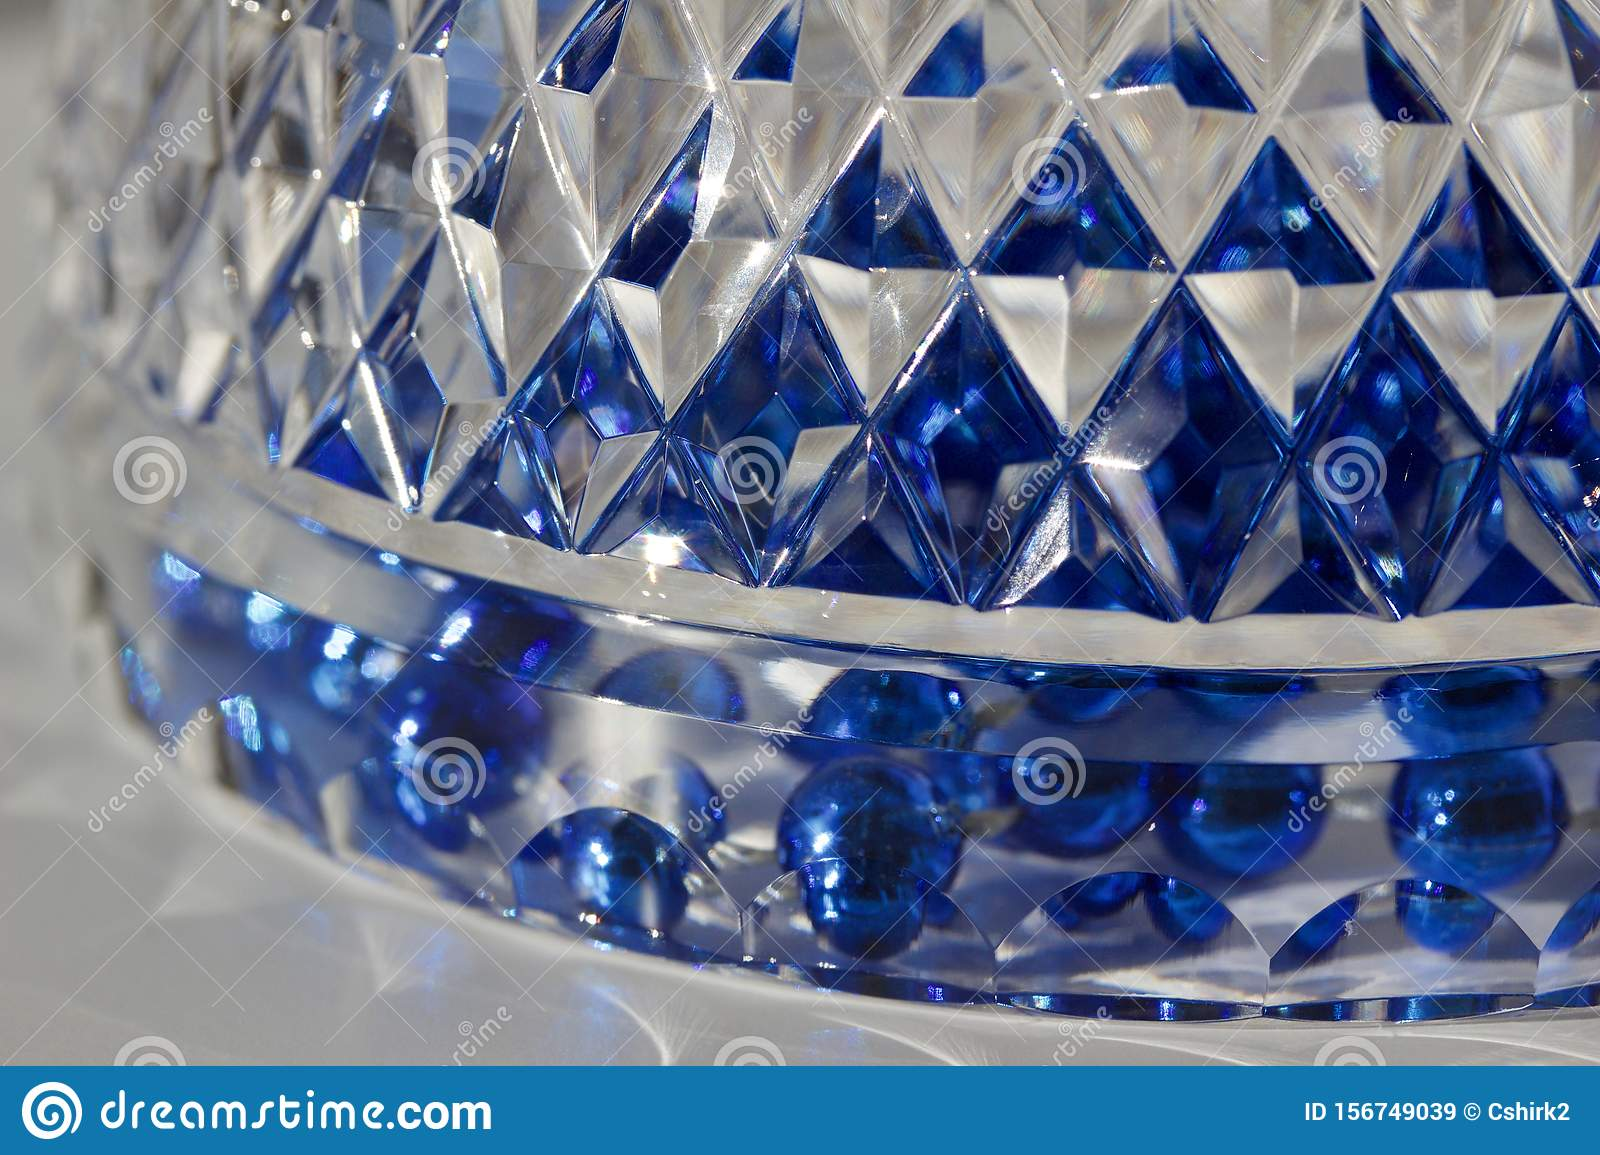 Macro abstract texture background of beautiful hand cut lead crystal glass with diamond cut facets